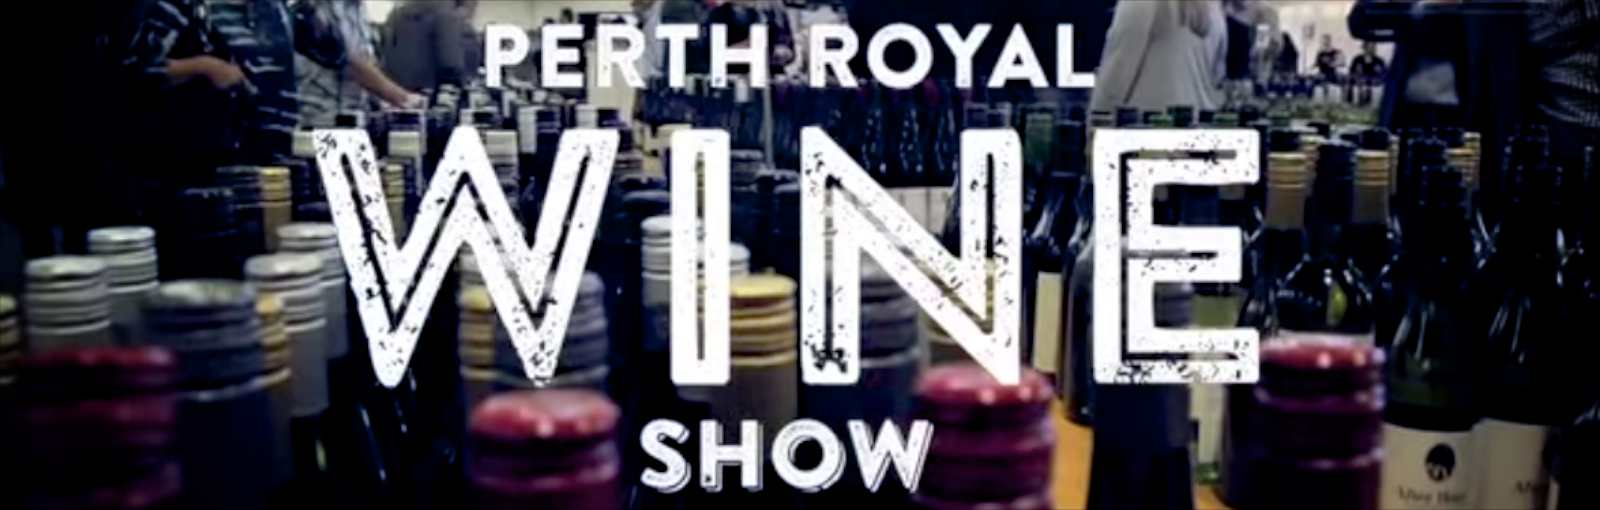 The Perth Royal Wine Show